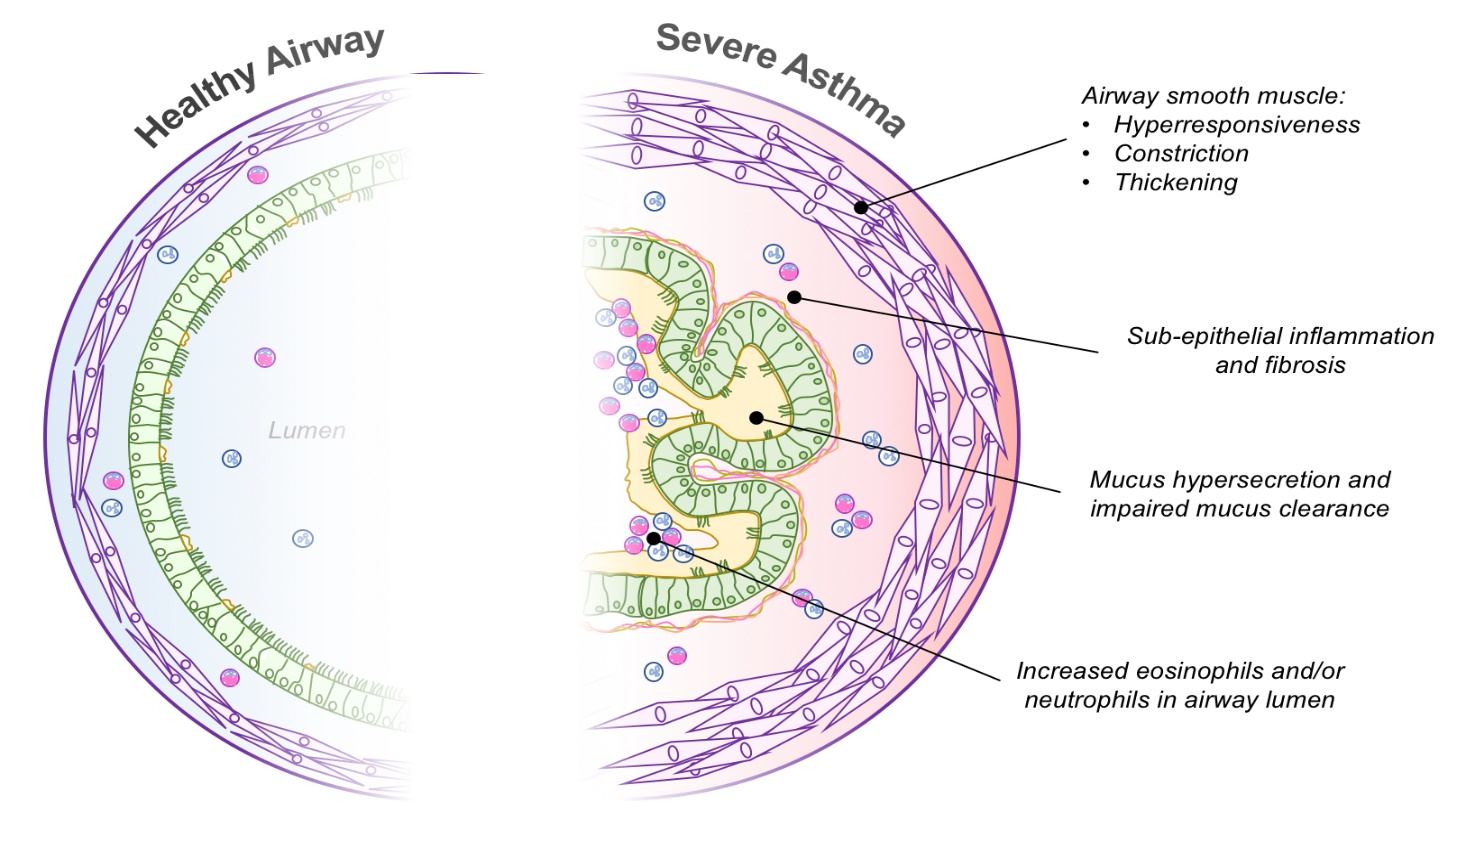 info-graphic about Severe Asthma Pathophysiology, Healthy airway and what is severe asthma